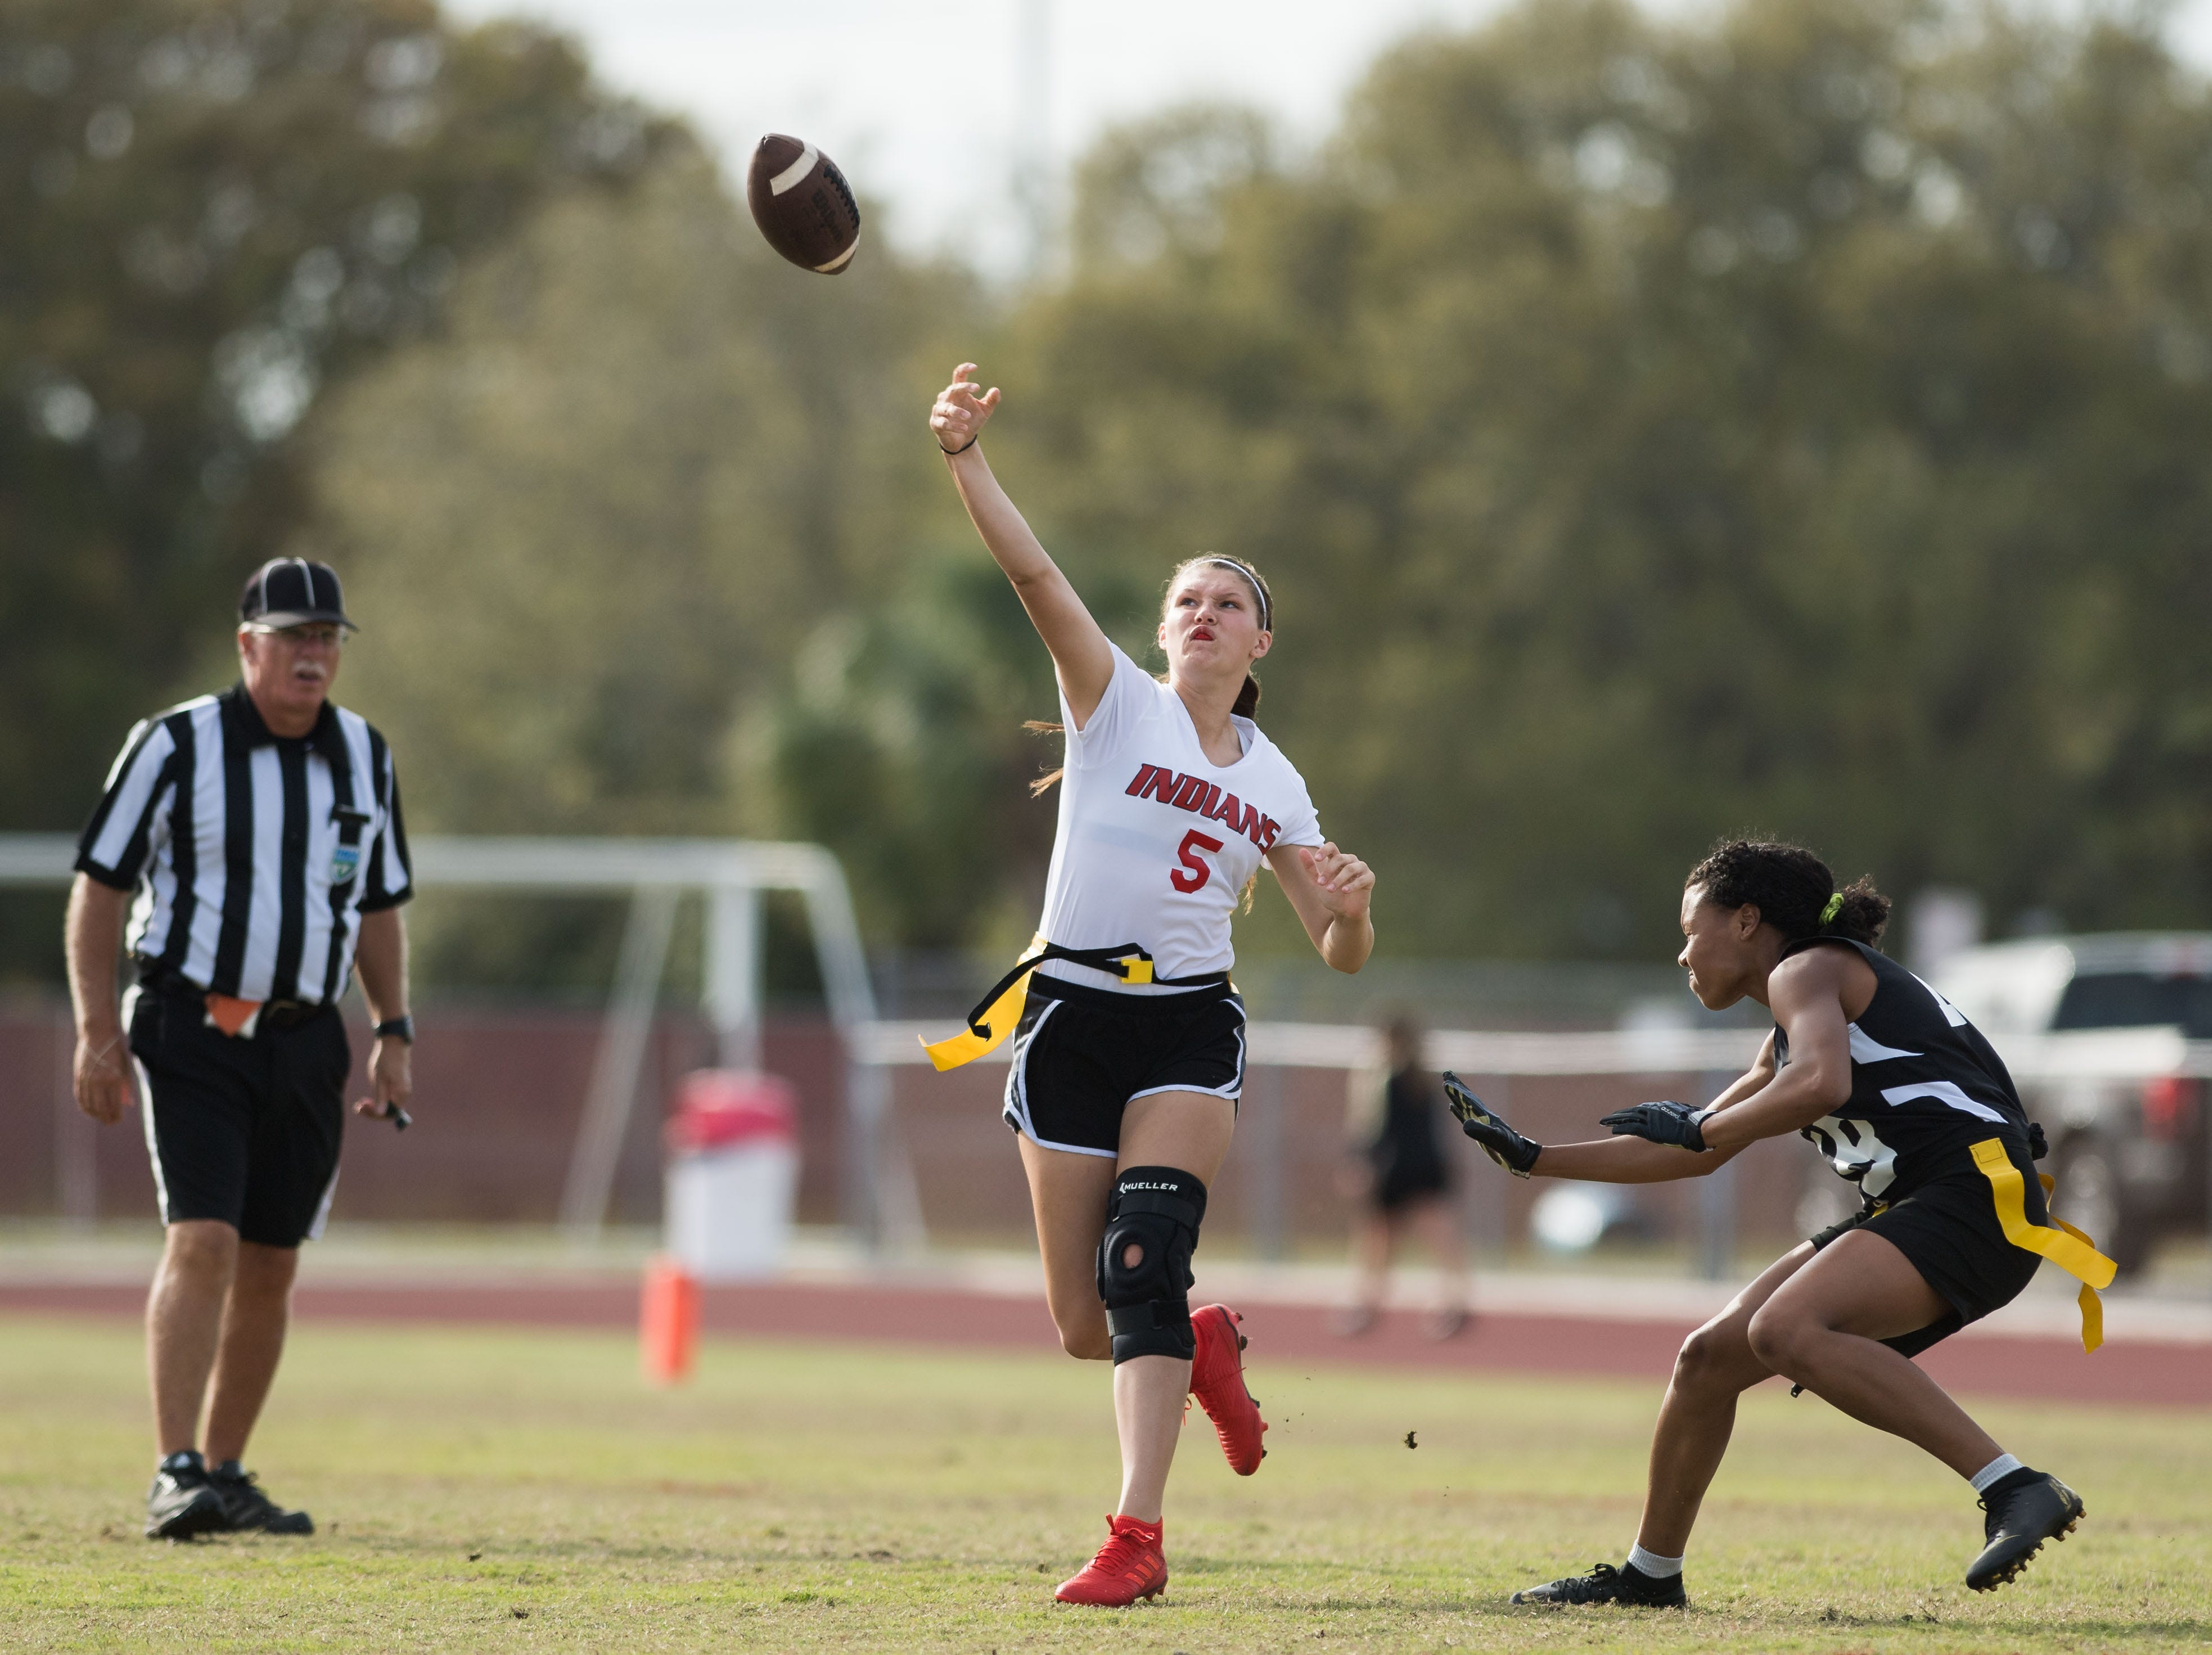 Vero Beach quarterback Taylor Gruwell launches a pass under pressure from Treasure Coast's Angelina Lopez, but there ball is intercepted by Savannah Hawthorne, during the first quarter of the high school flag football game Wednesday, March 13, 2019, at Vero Beach High School.